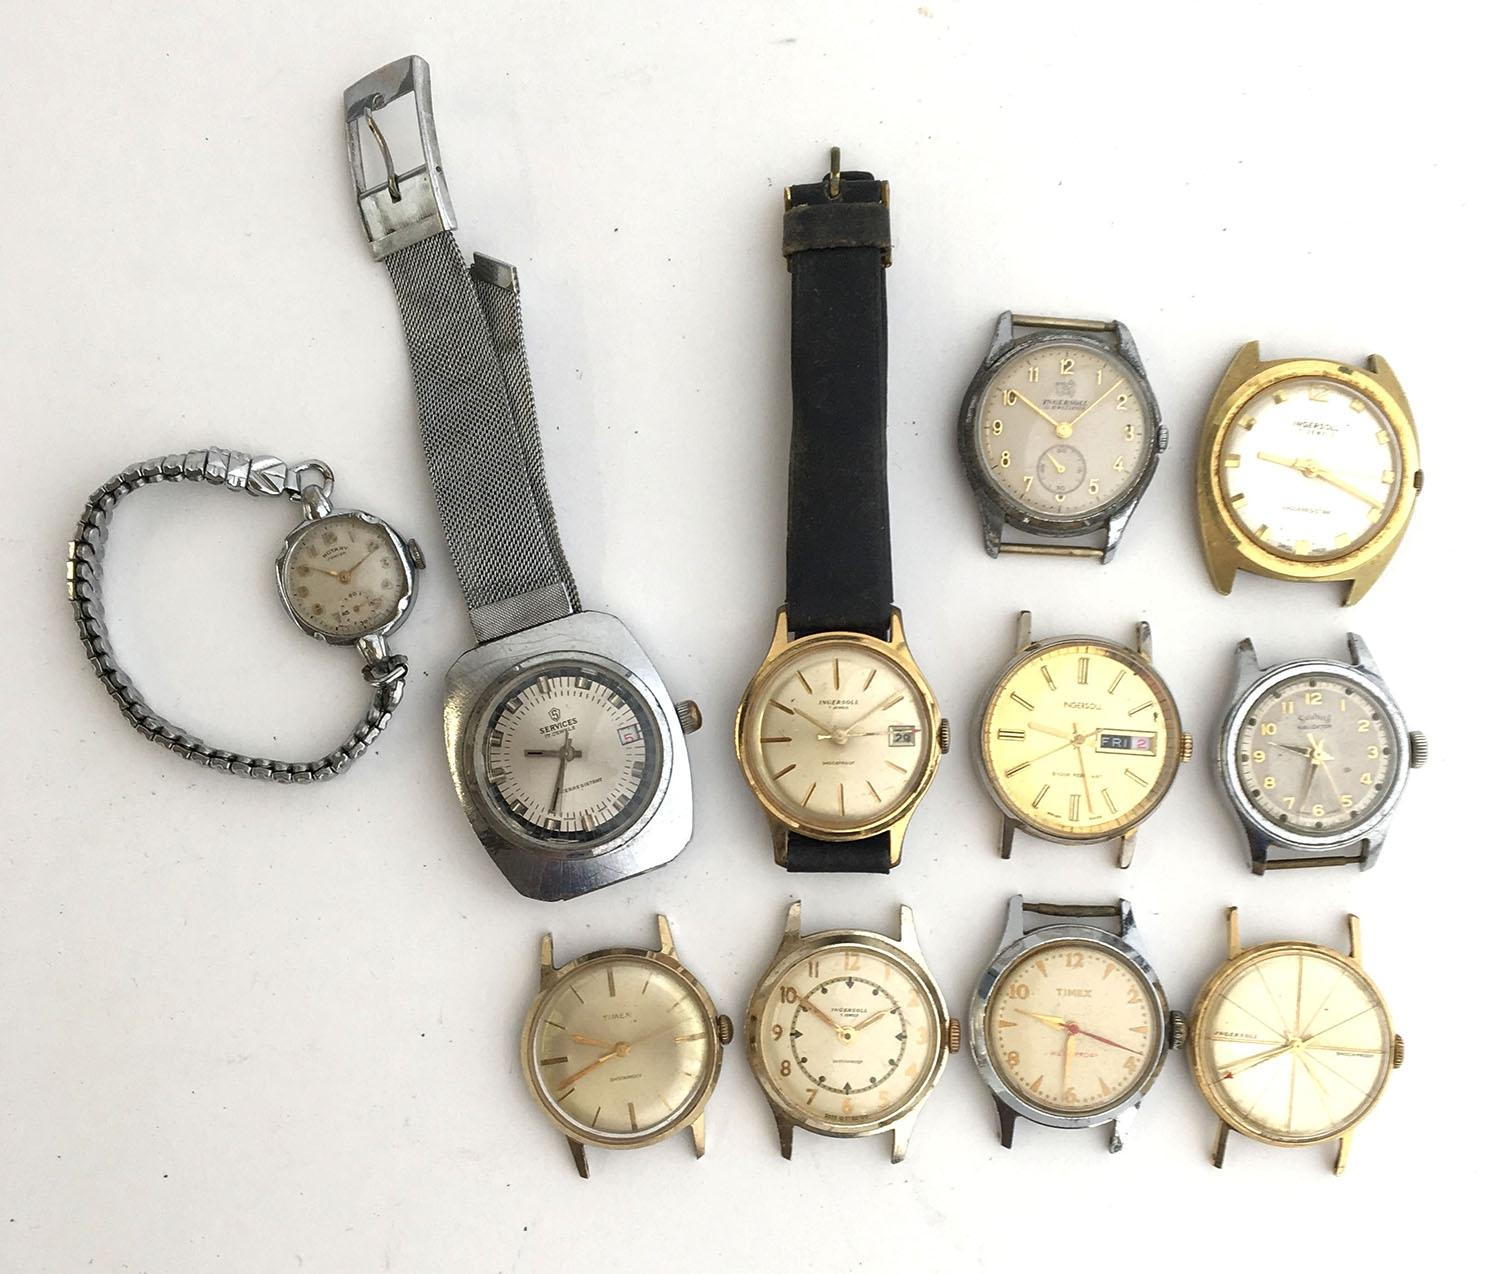 Lot 715 - A mixed lot 11 watches, including Ingesol, Timex, and Services